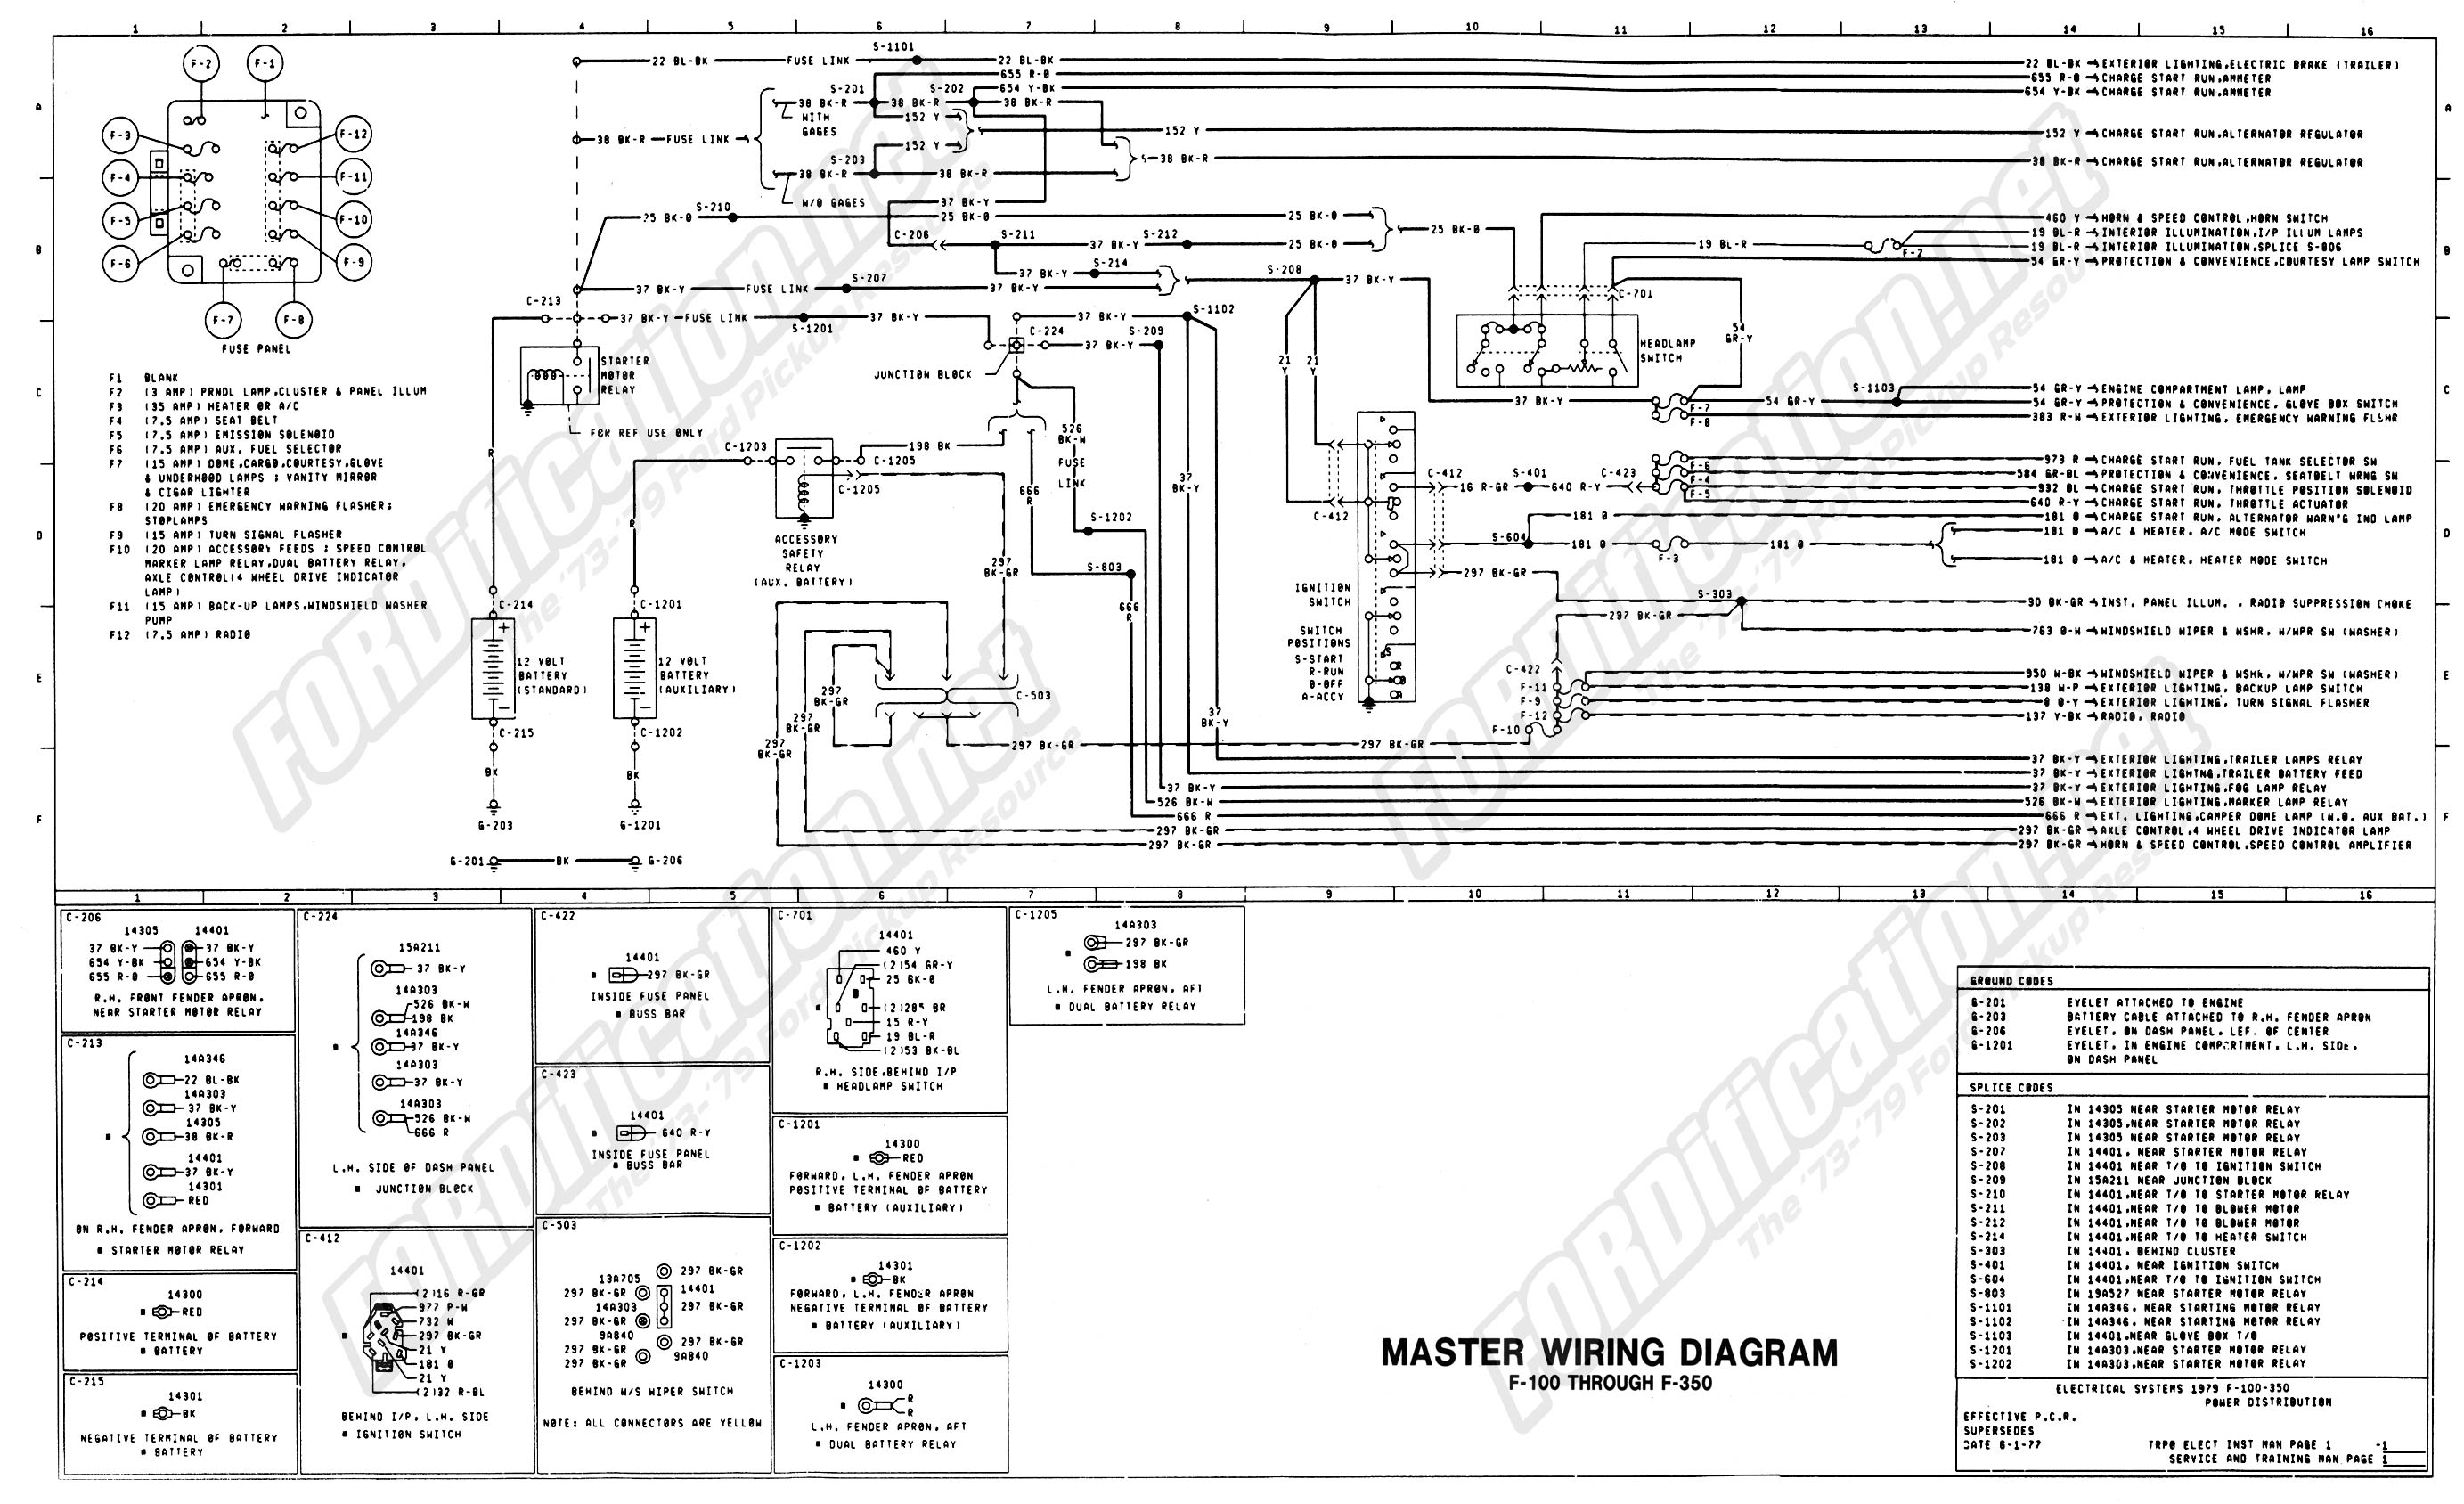 2001 sterling fuse box wiring diagram o5 sterling fuse box diagram 2001 sterling fuse box #12